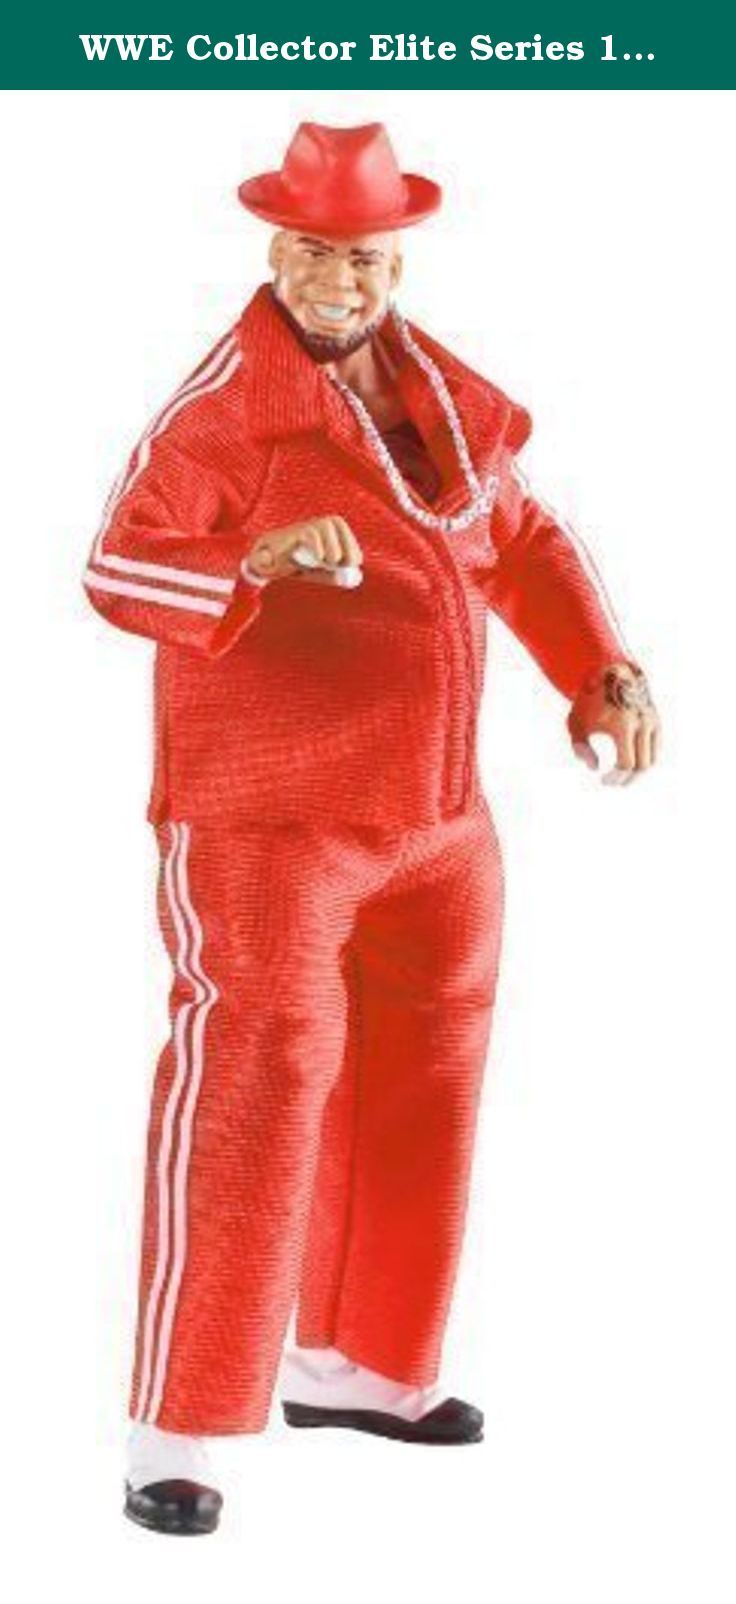 WWE Collector Elite Series 18 Brodus Clay Figure by Mattel [parallel import goods]. It's shipped off from Japan.